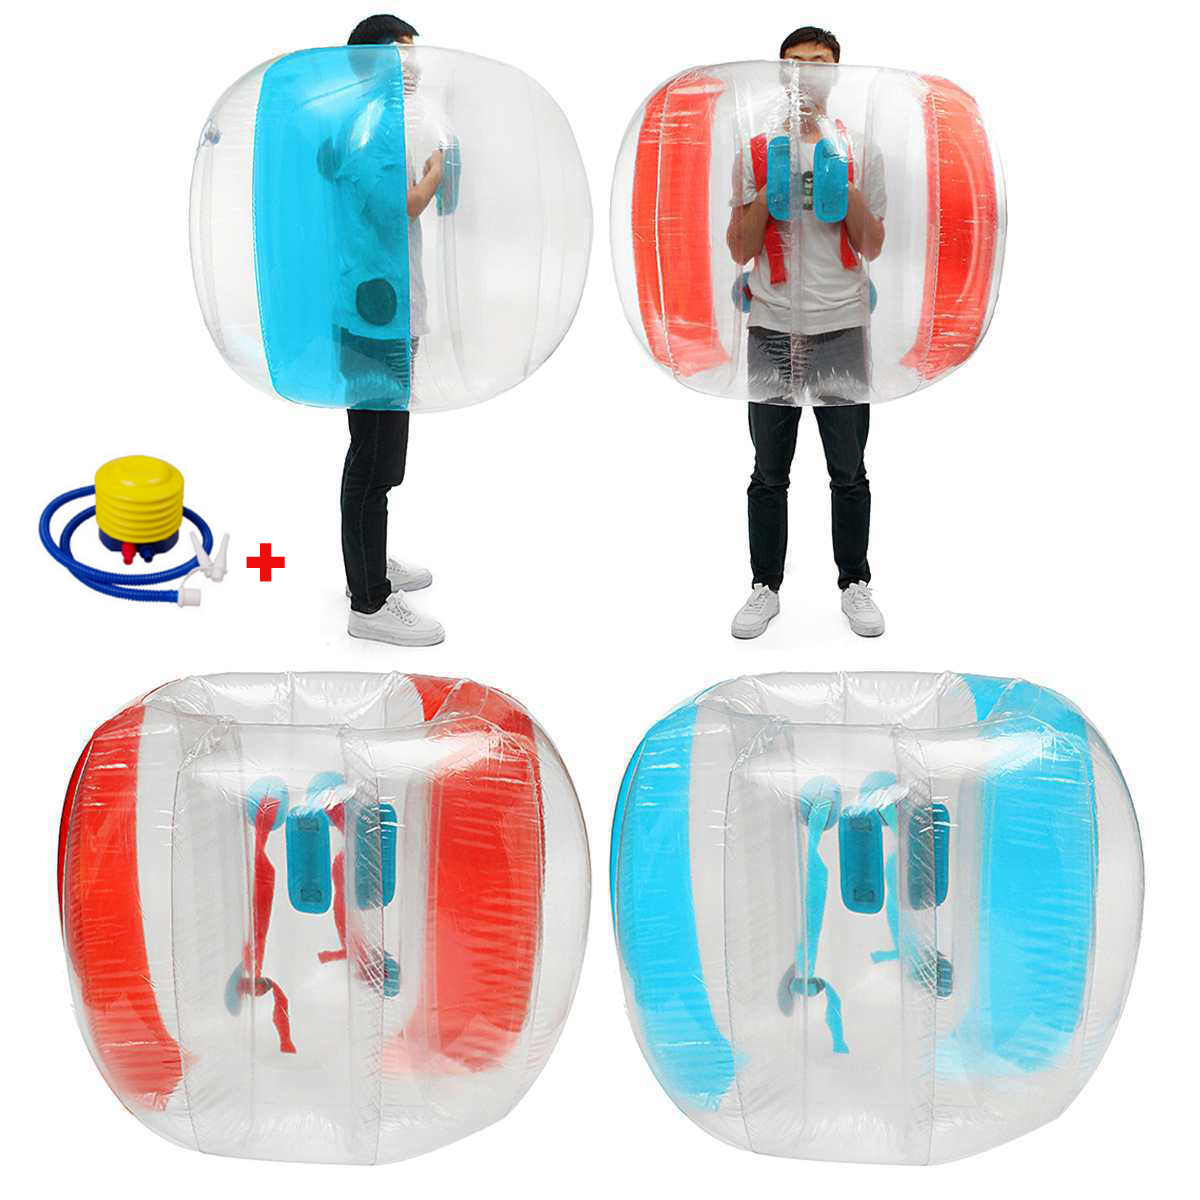 90cm Adults Bumper balls Sports Games Zorbing Ball Bubbles Parent-Child Recreational Sports Fitness Balls Toy Foot Pump For Free